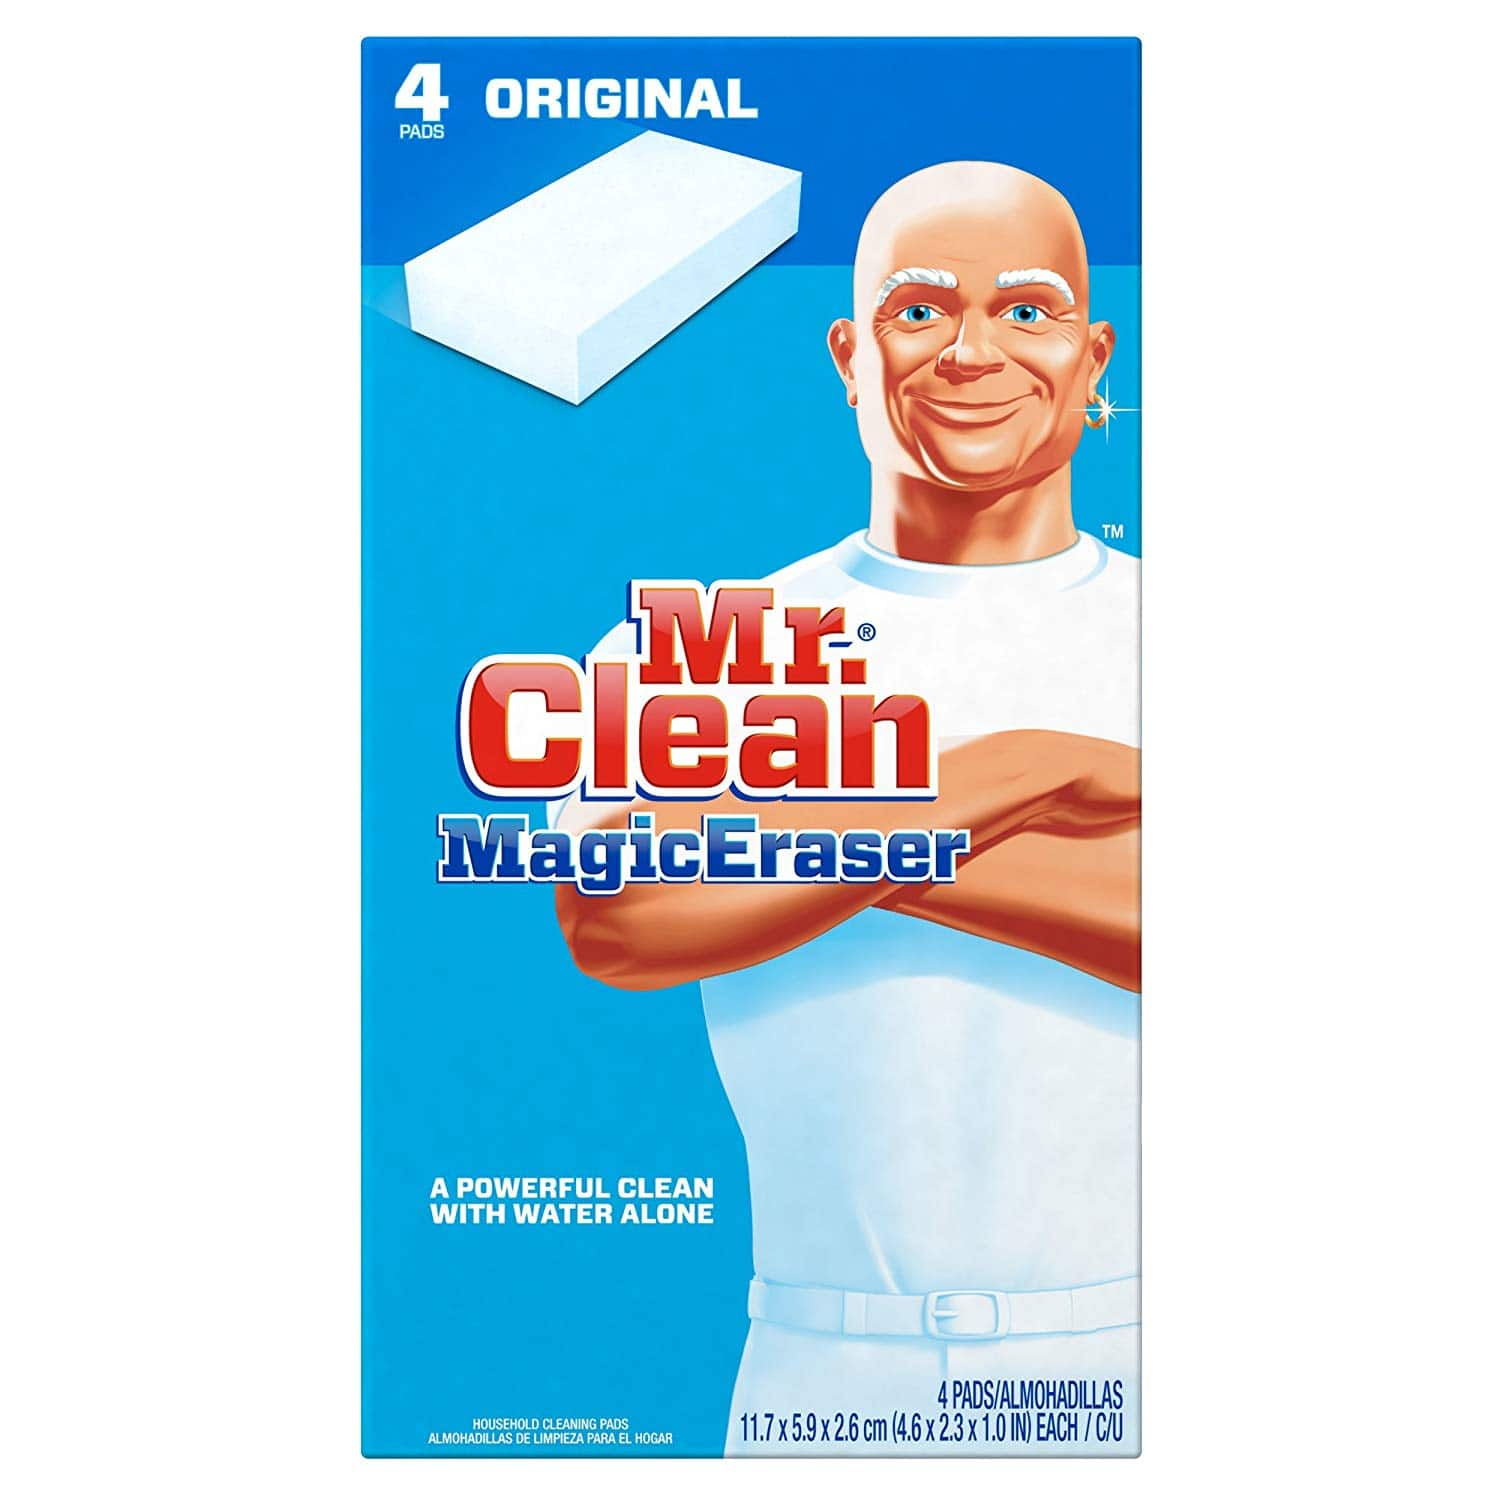 4-Count Mr. Clean Magic Eraser Multi-Surface Cleaner (Original) $2.47 + free ship with Prime